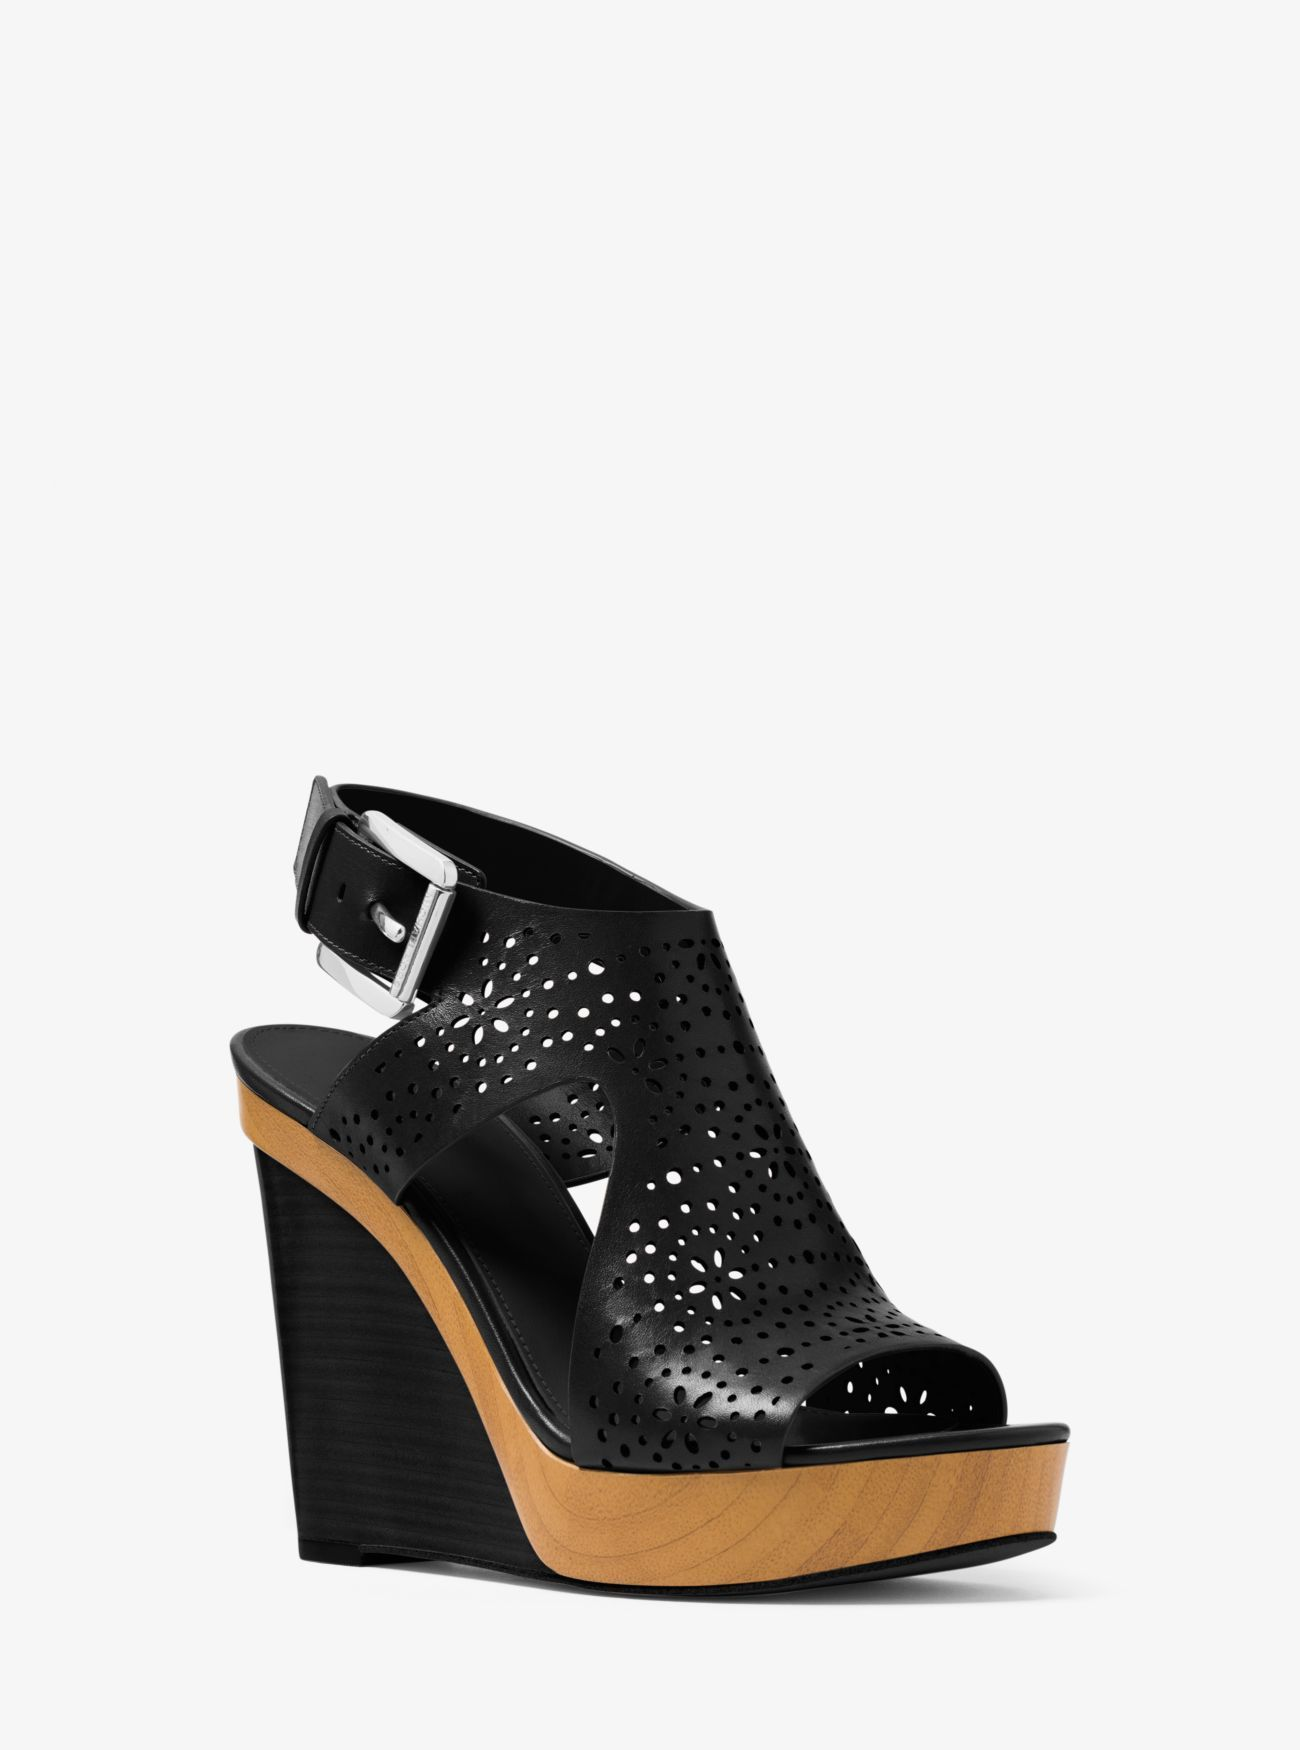 1a18f964e0c Josephine Perforated Leather Wedge. Josephine Perforated Leather Wedge  Michael Kors ...